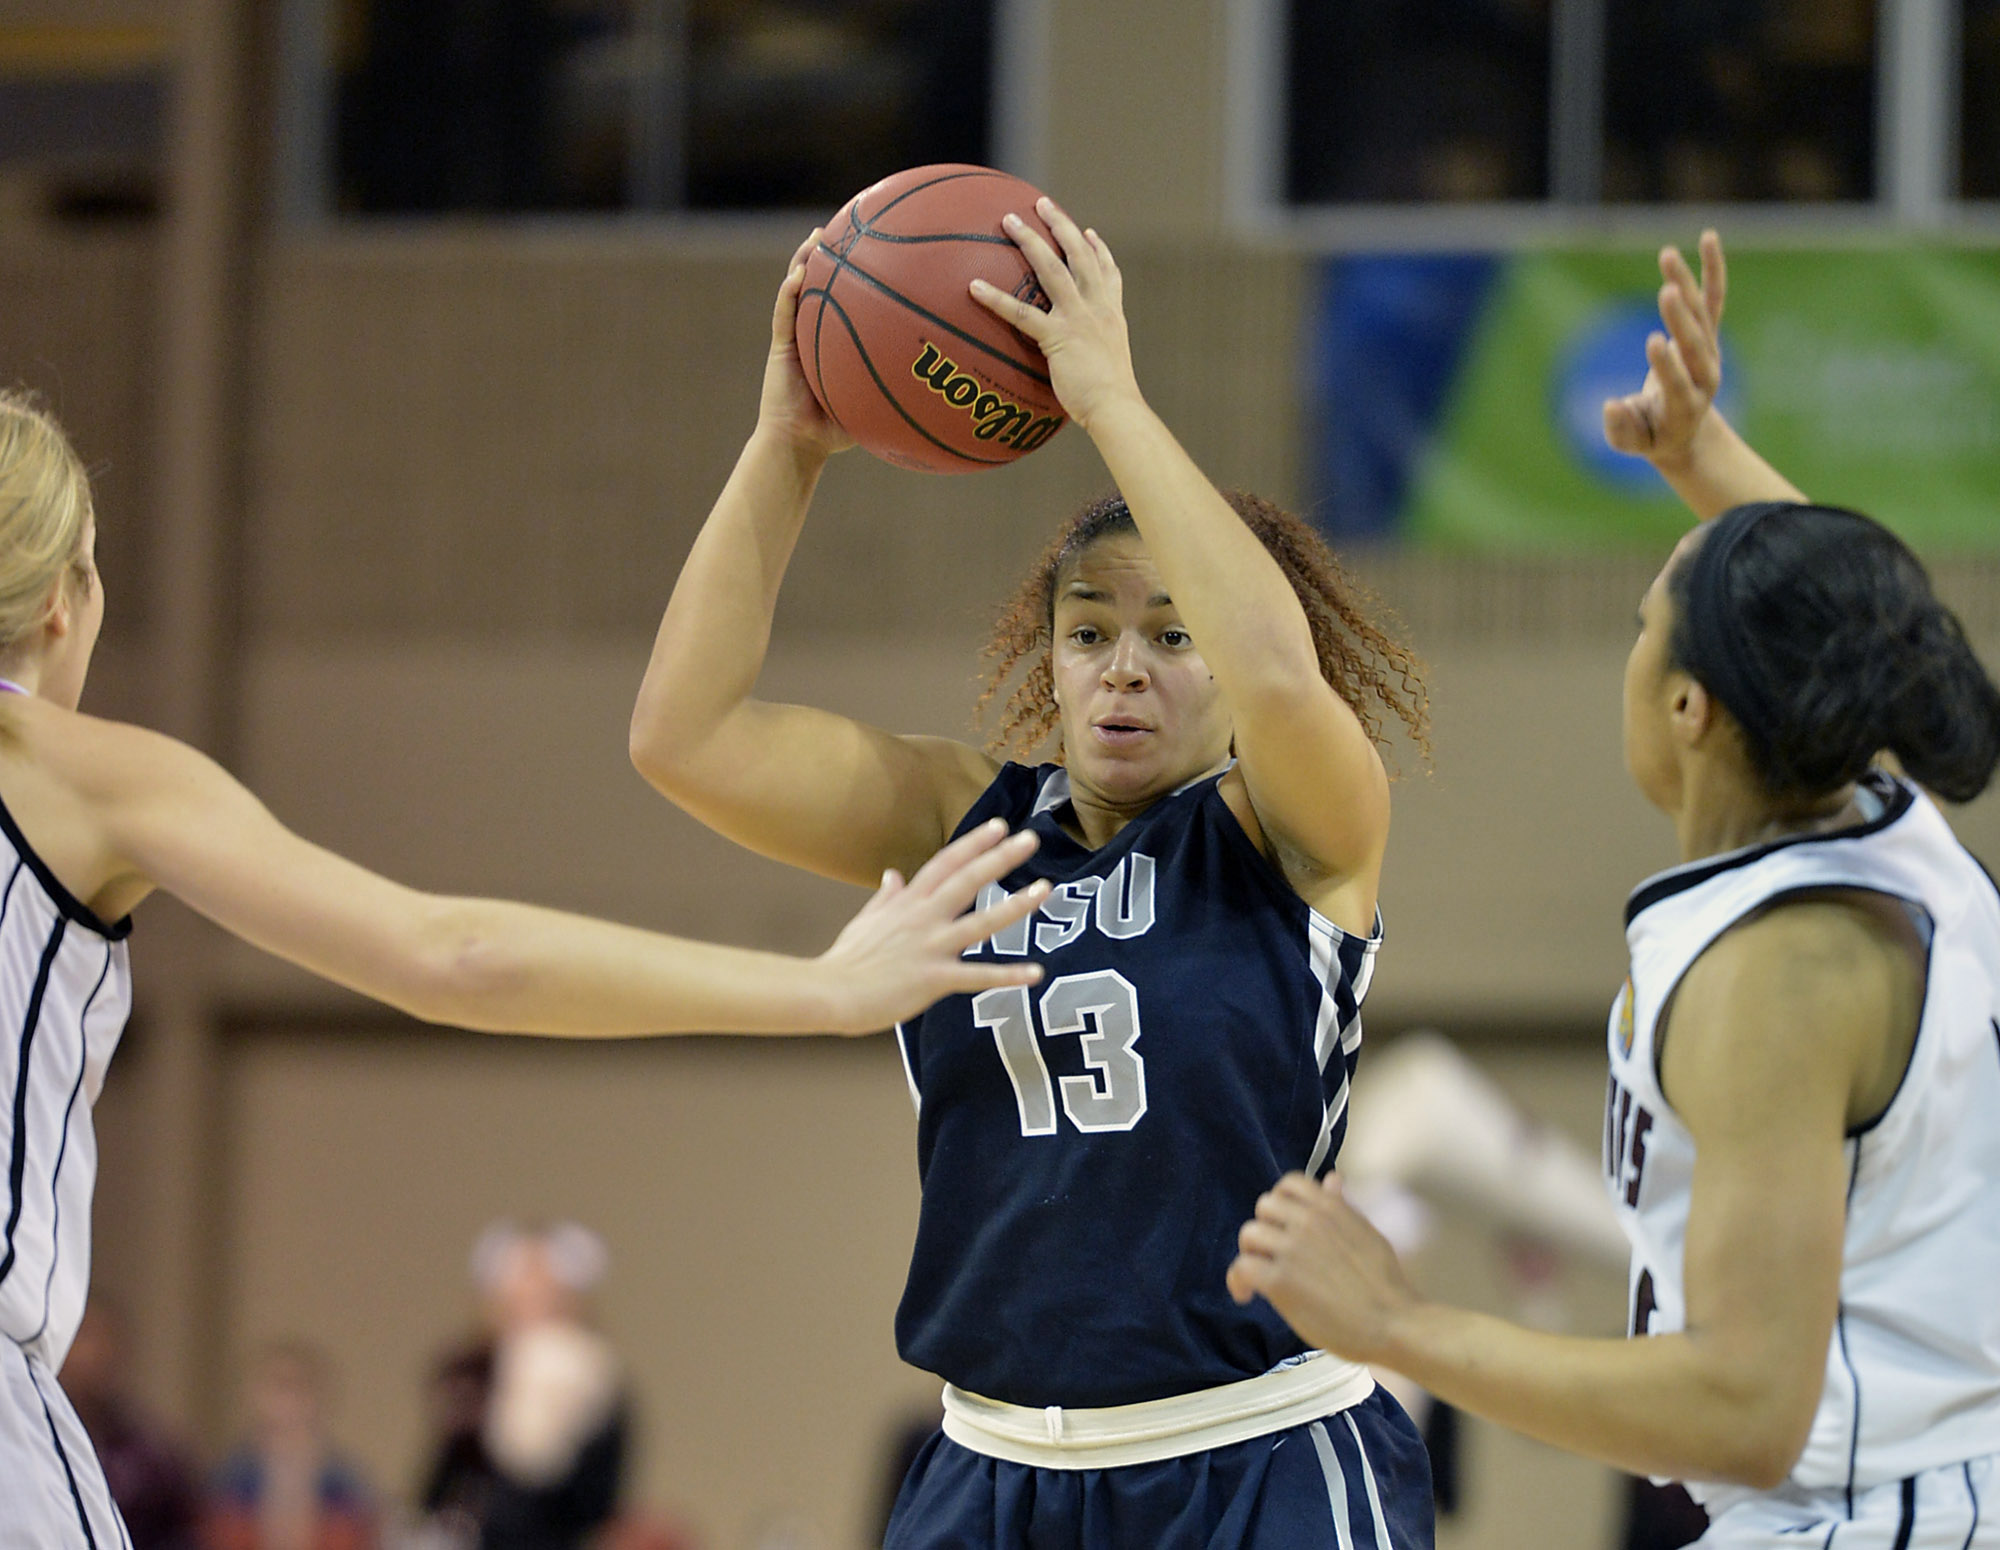 Nova Southeastern's Taylor Buie looks for an open teammate under pressure from West Texas A&M's Casey Land, left, and Devin Griffin, right, during the first half in an NCAA women's Division II basketball tournament semifinal in Erie, Pa., on Wednesday, March 26, 2014